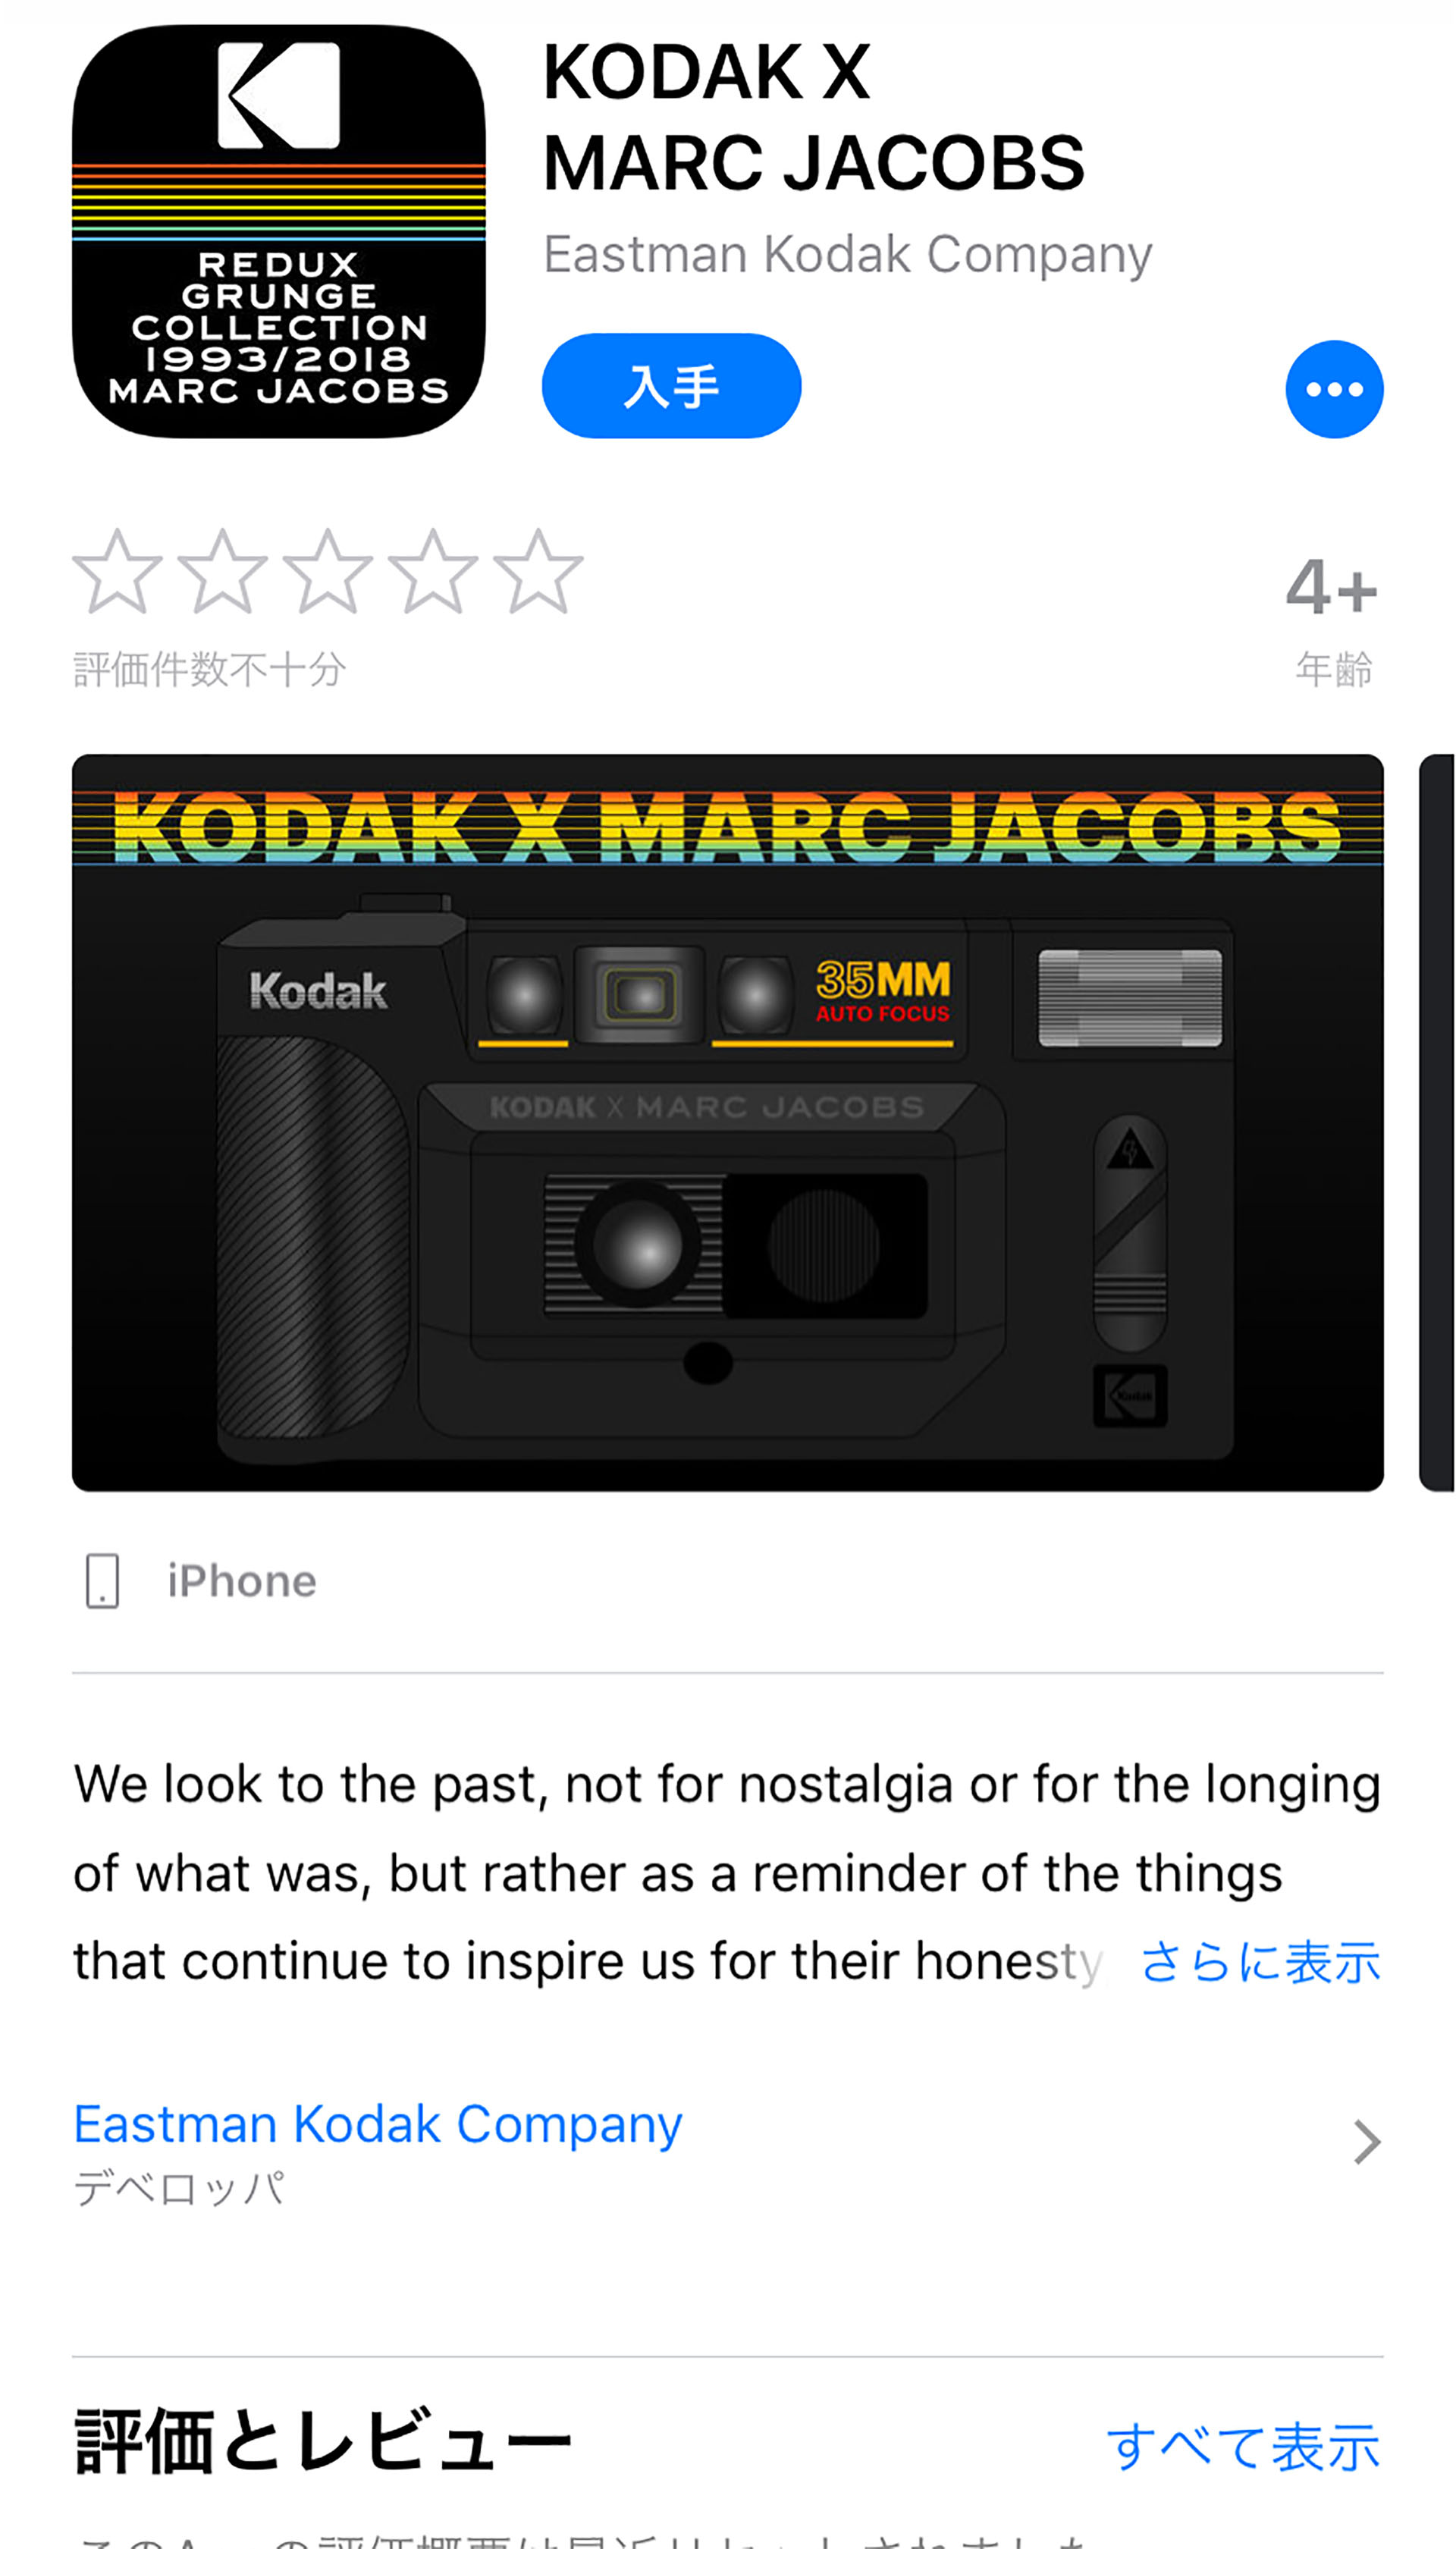 KODAK X MARC JACOBS